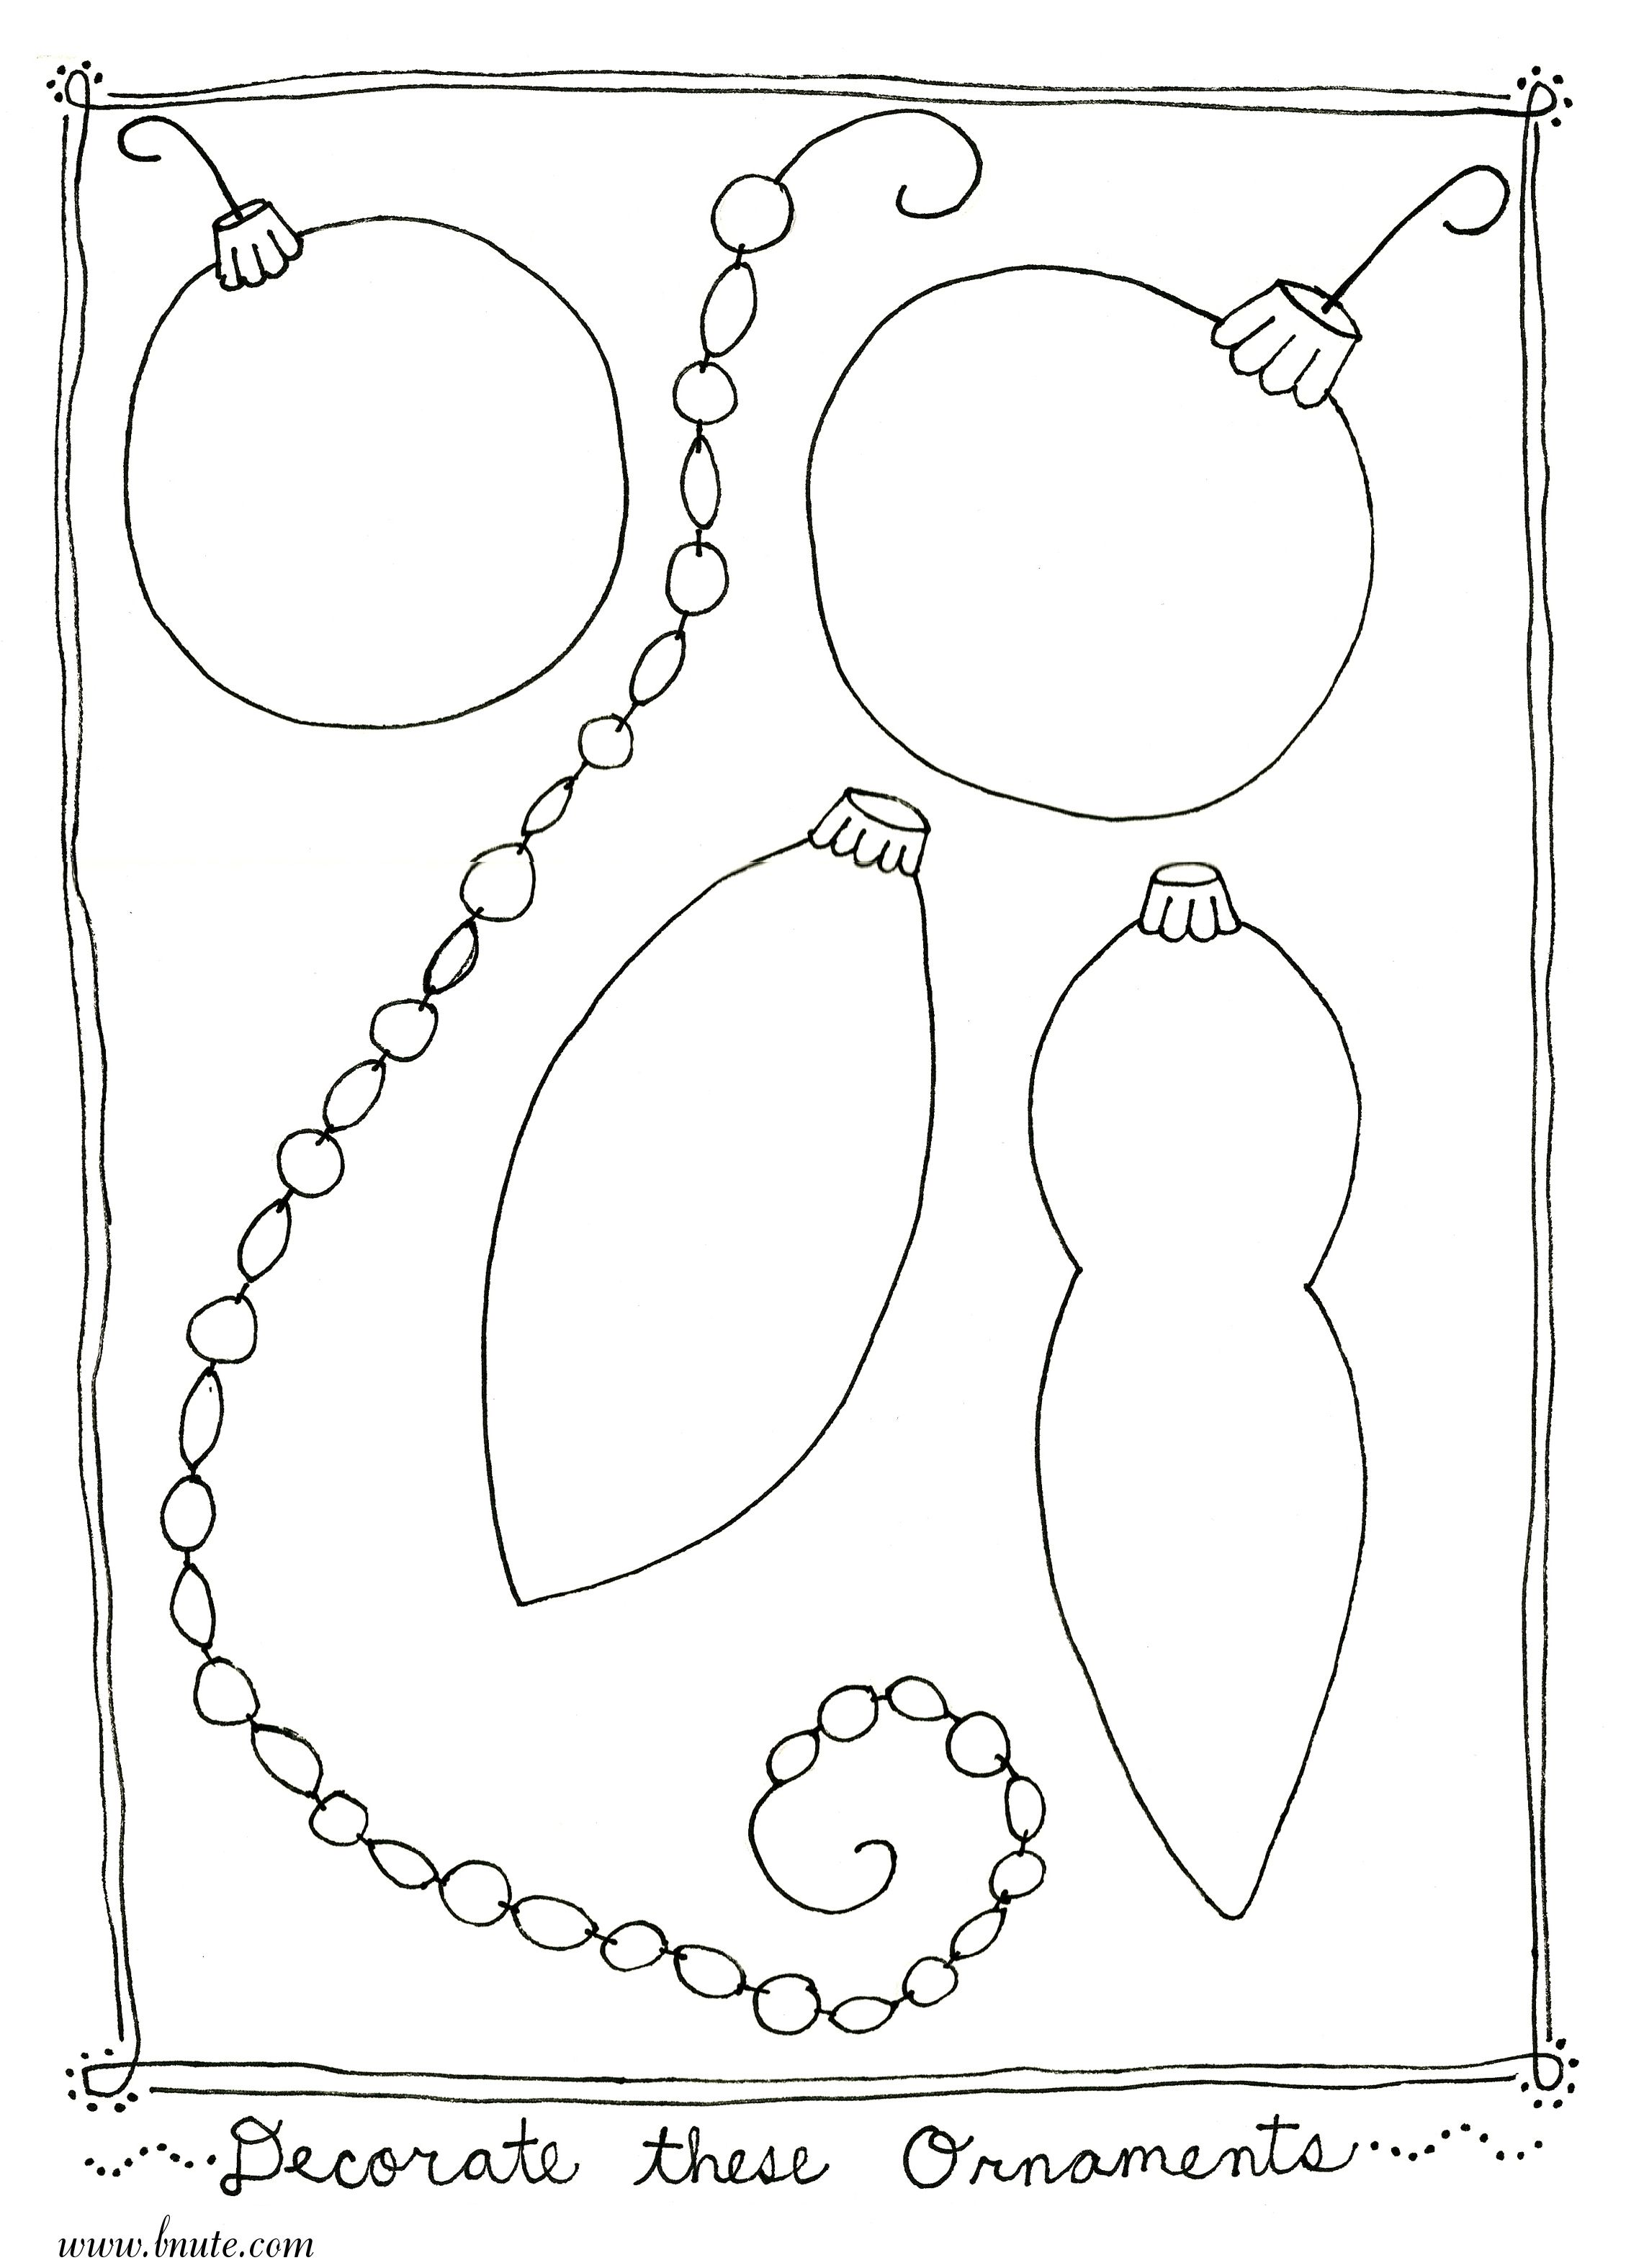 Christmas Ornament Coloring Pages More Christmas